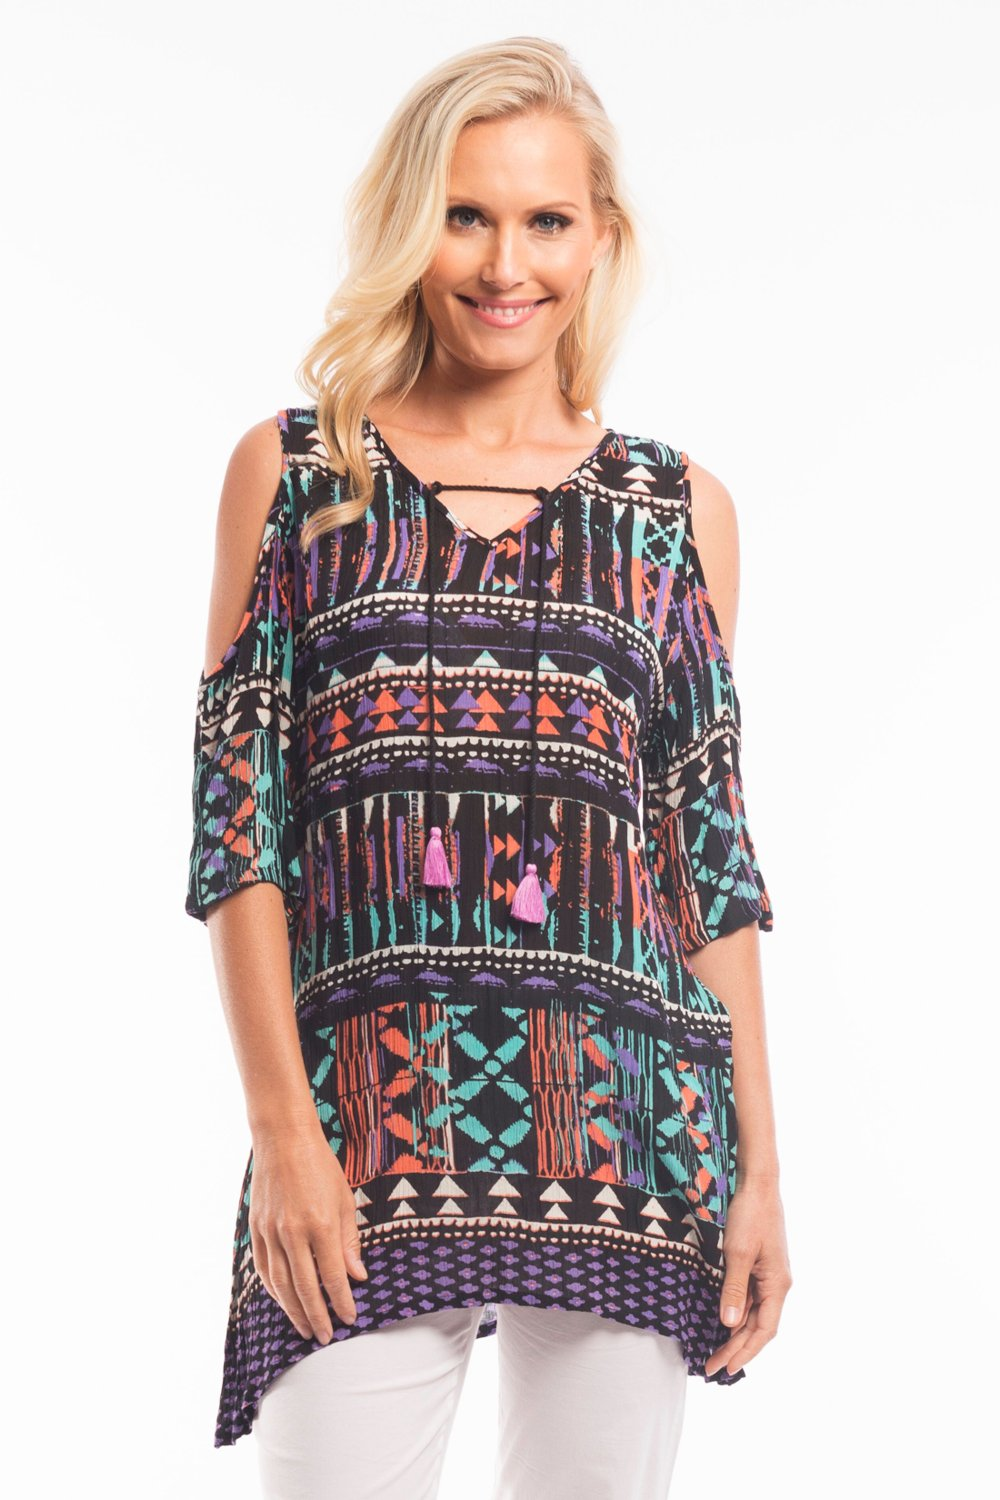 Black Carnival Tunic Top | I Love Tunics | Tunic Tops | Tunic Dresses | Women's Tops | Plus Size Australia | Mature Fashion